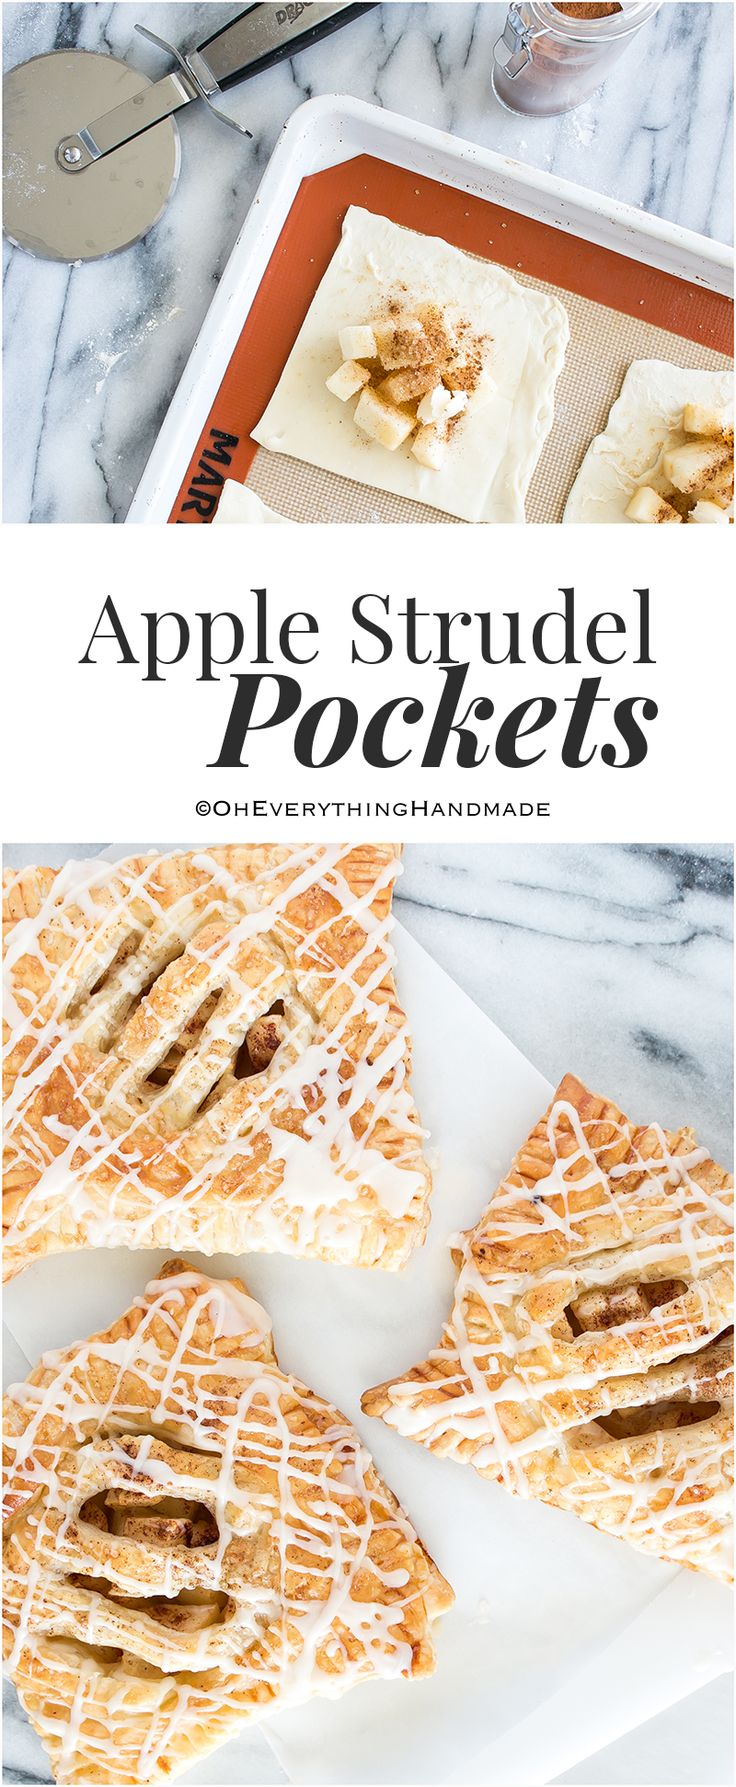 Apple Strudel Pockets are my go-to dessert, this recipe is very simple to make and you can enjoy them within 30 minutes. I also made similar Apple Turnovers a while back, which are just as delicious but require a few additional steps.